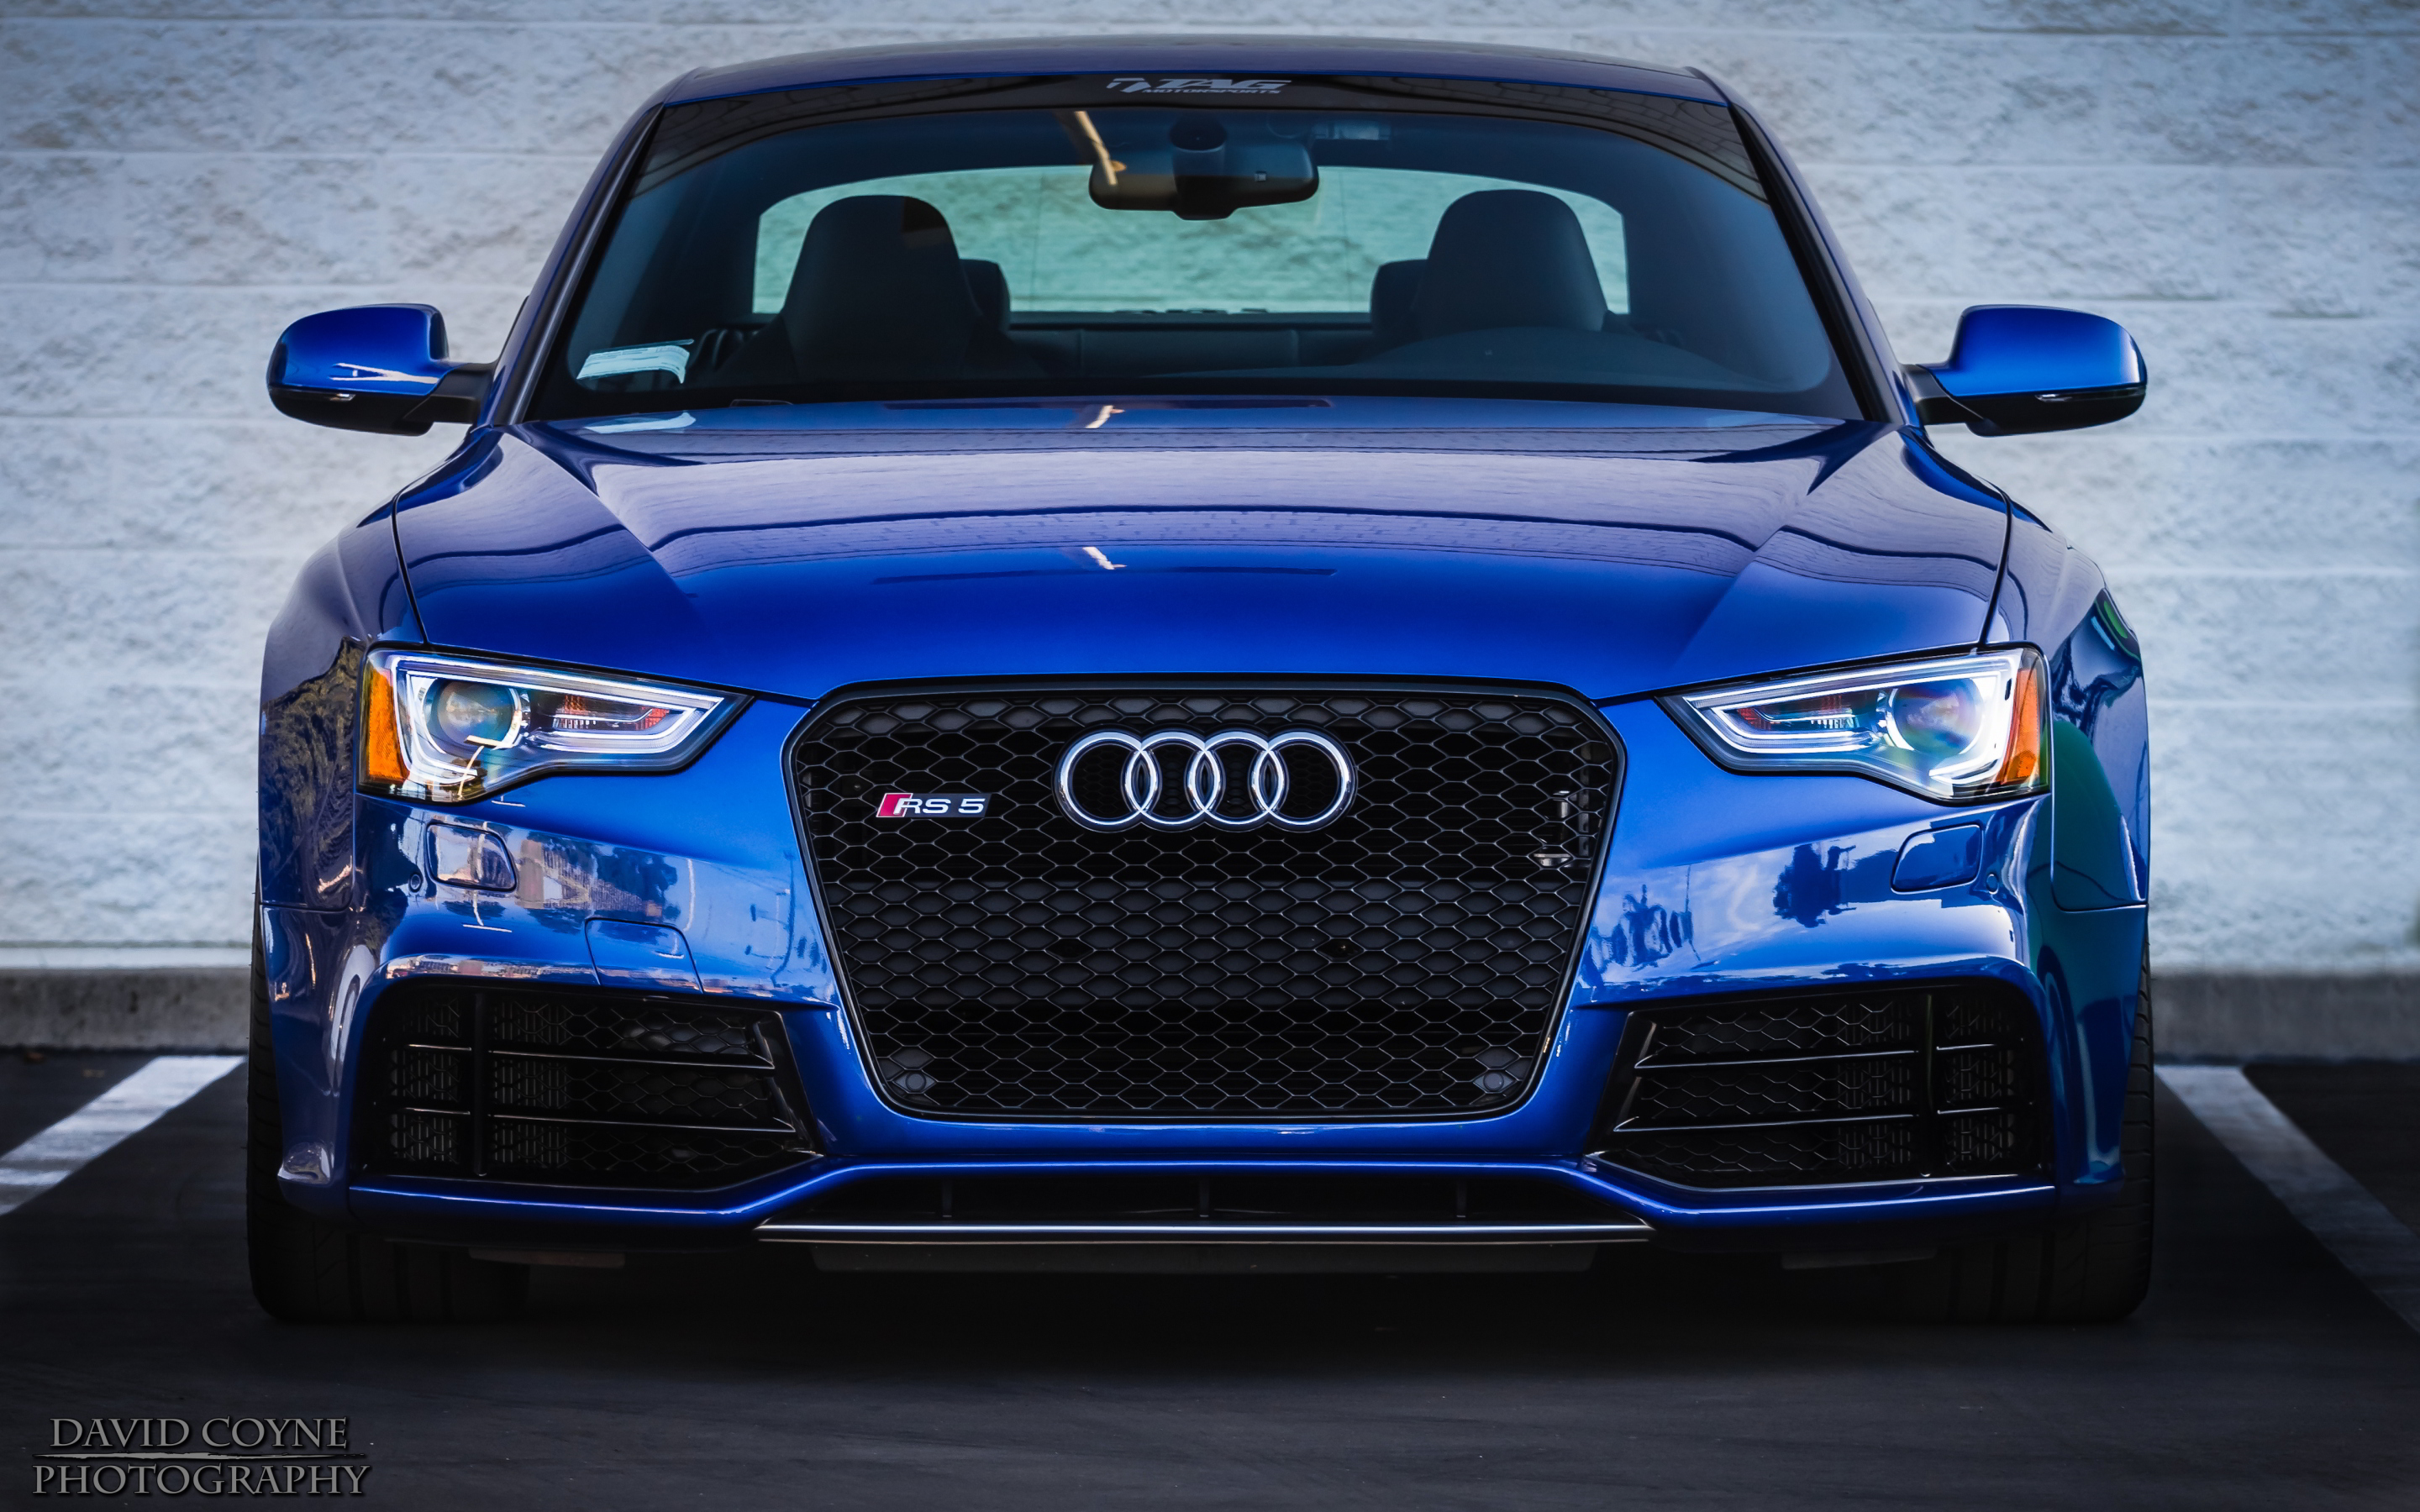 Audi Rs5 Wallpapers Vehicles Hq Audi Rs5 Pictures 4k Wallpapers 2019